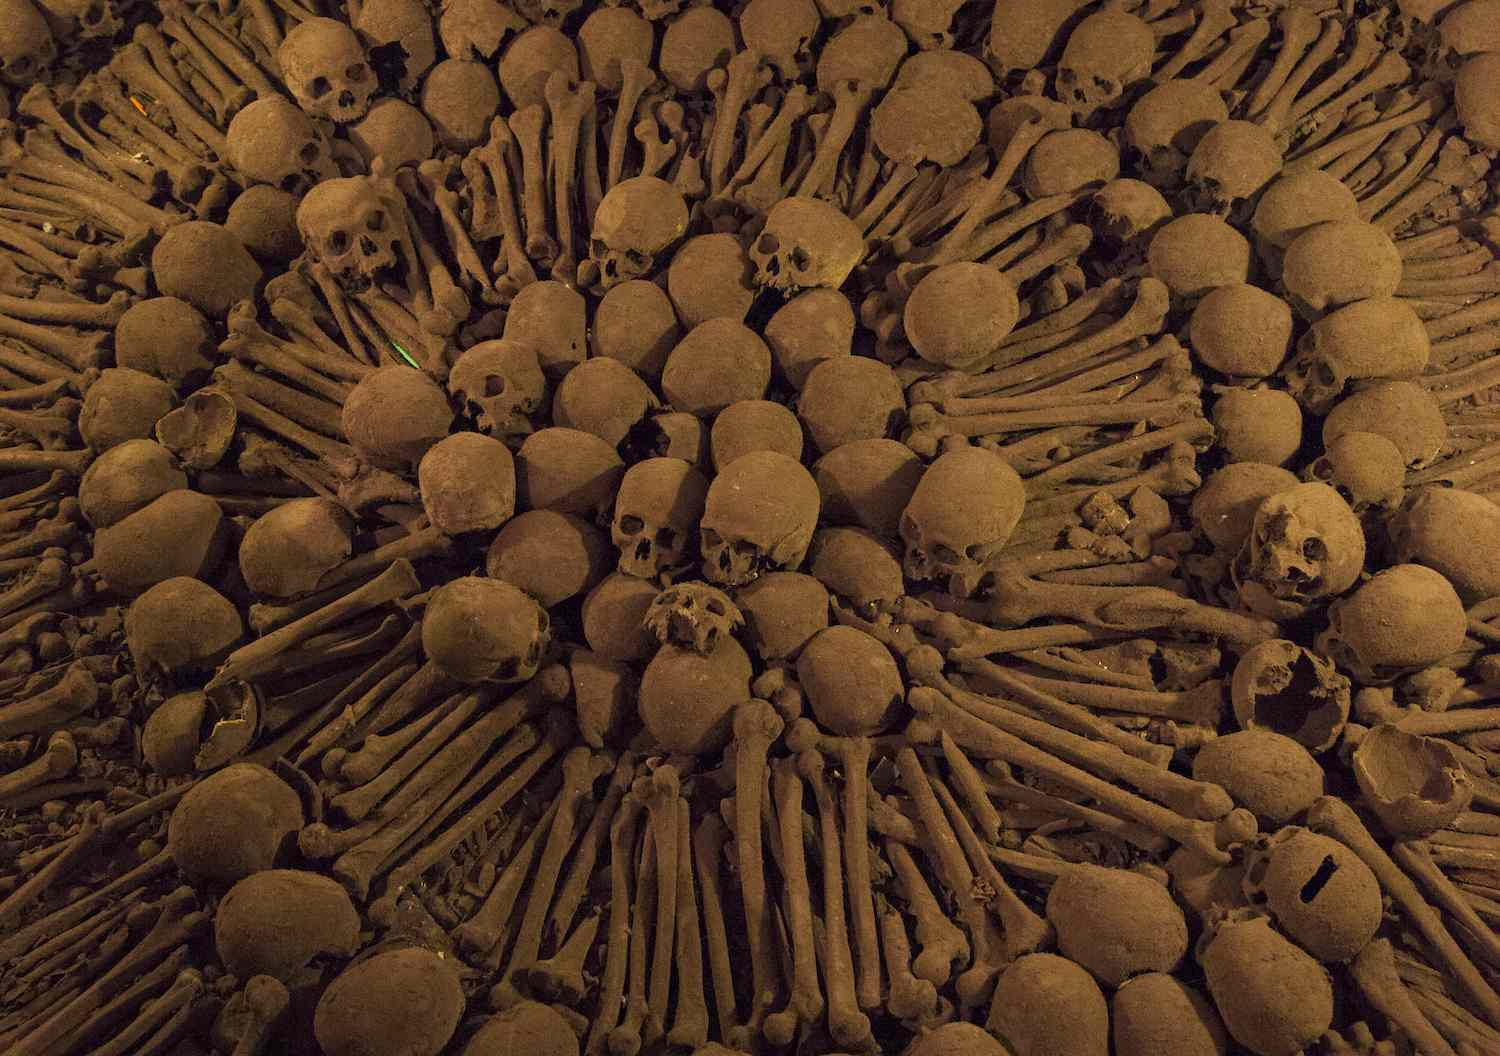 Bones and skulls laid out in an intricate design at Catacombs of Lima at the Monastery of San Francisco